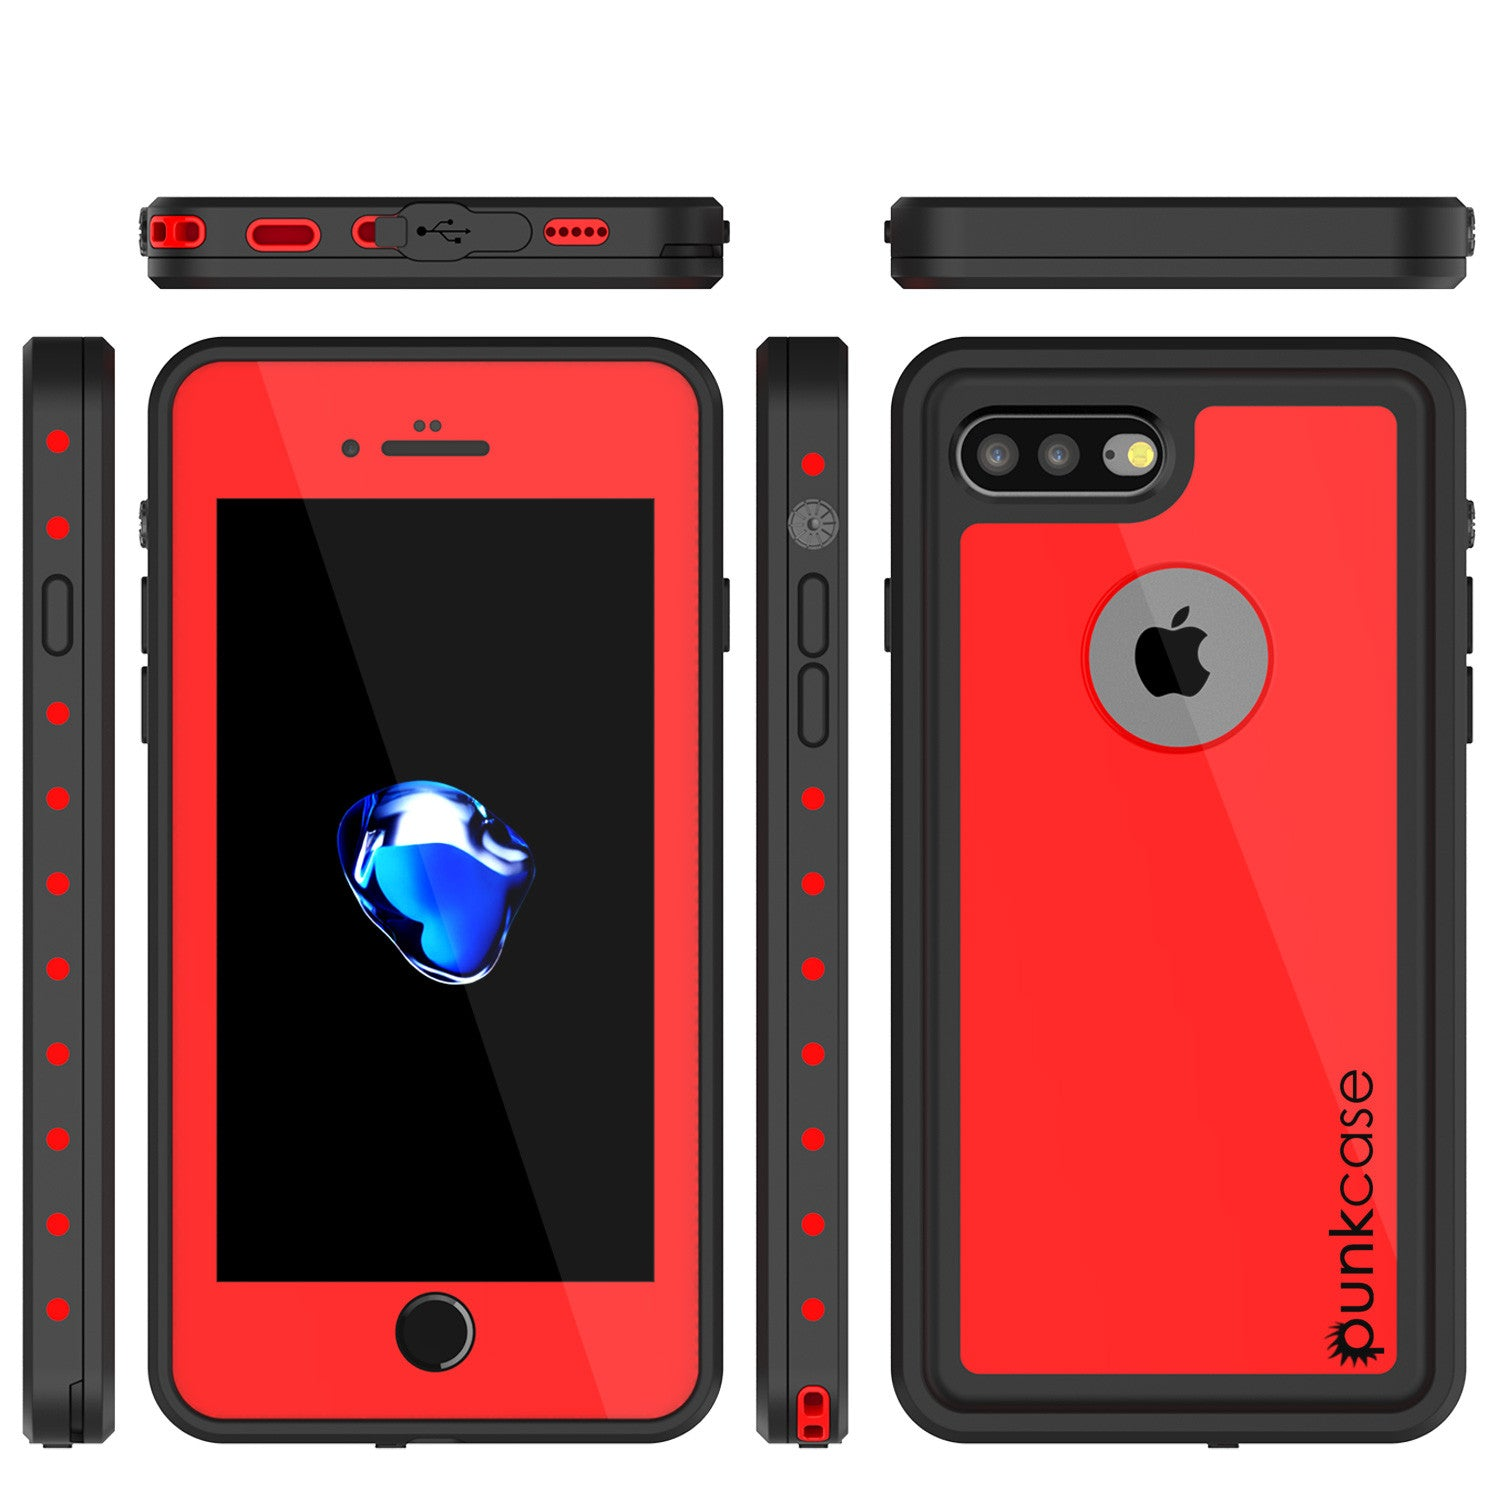 iPhone 7+ Plus Waterproof IP68 Case, Punkcase [Red] [StudStar Series] [Slim Fit] [Dirtproof]